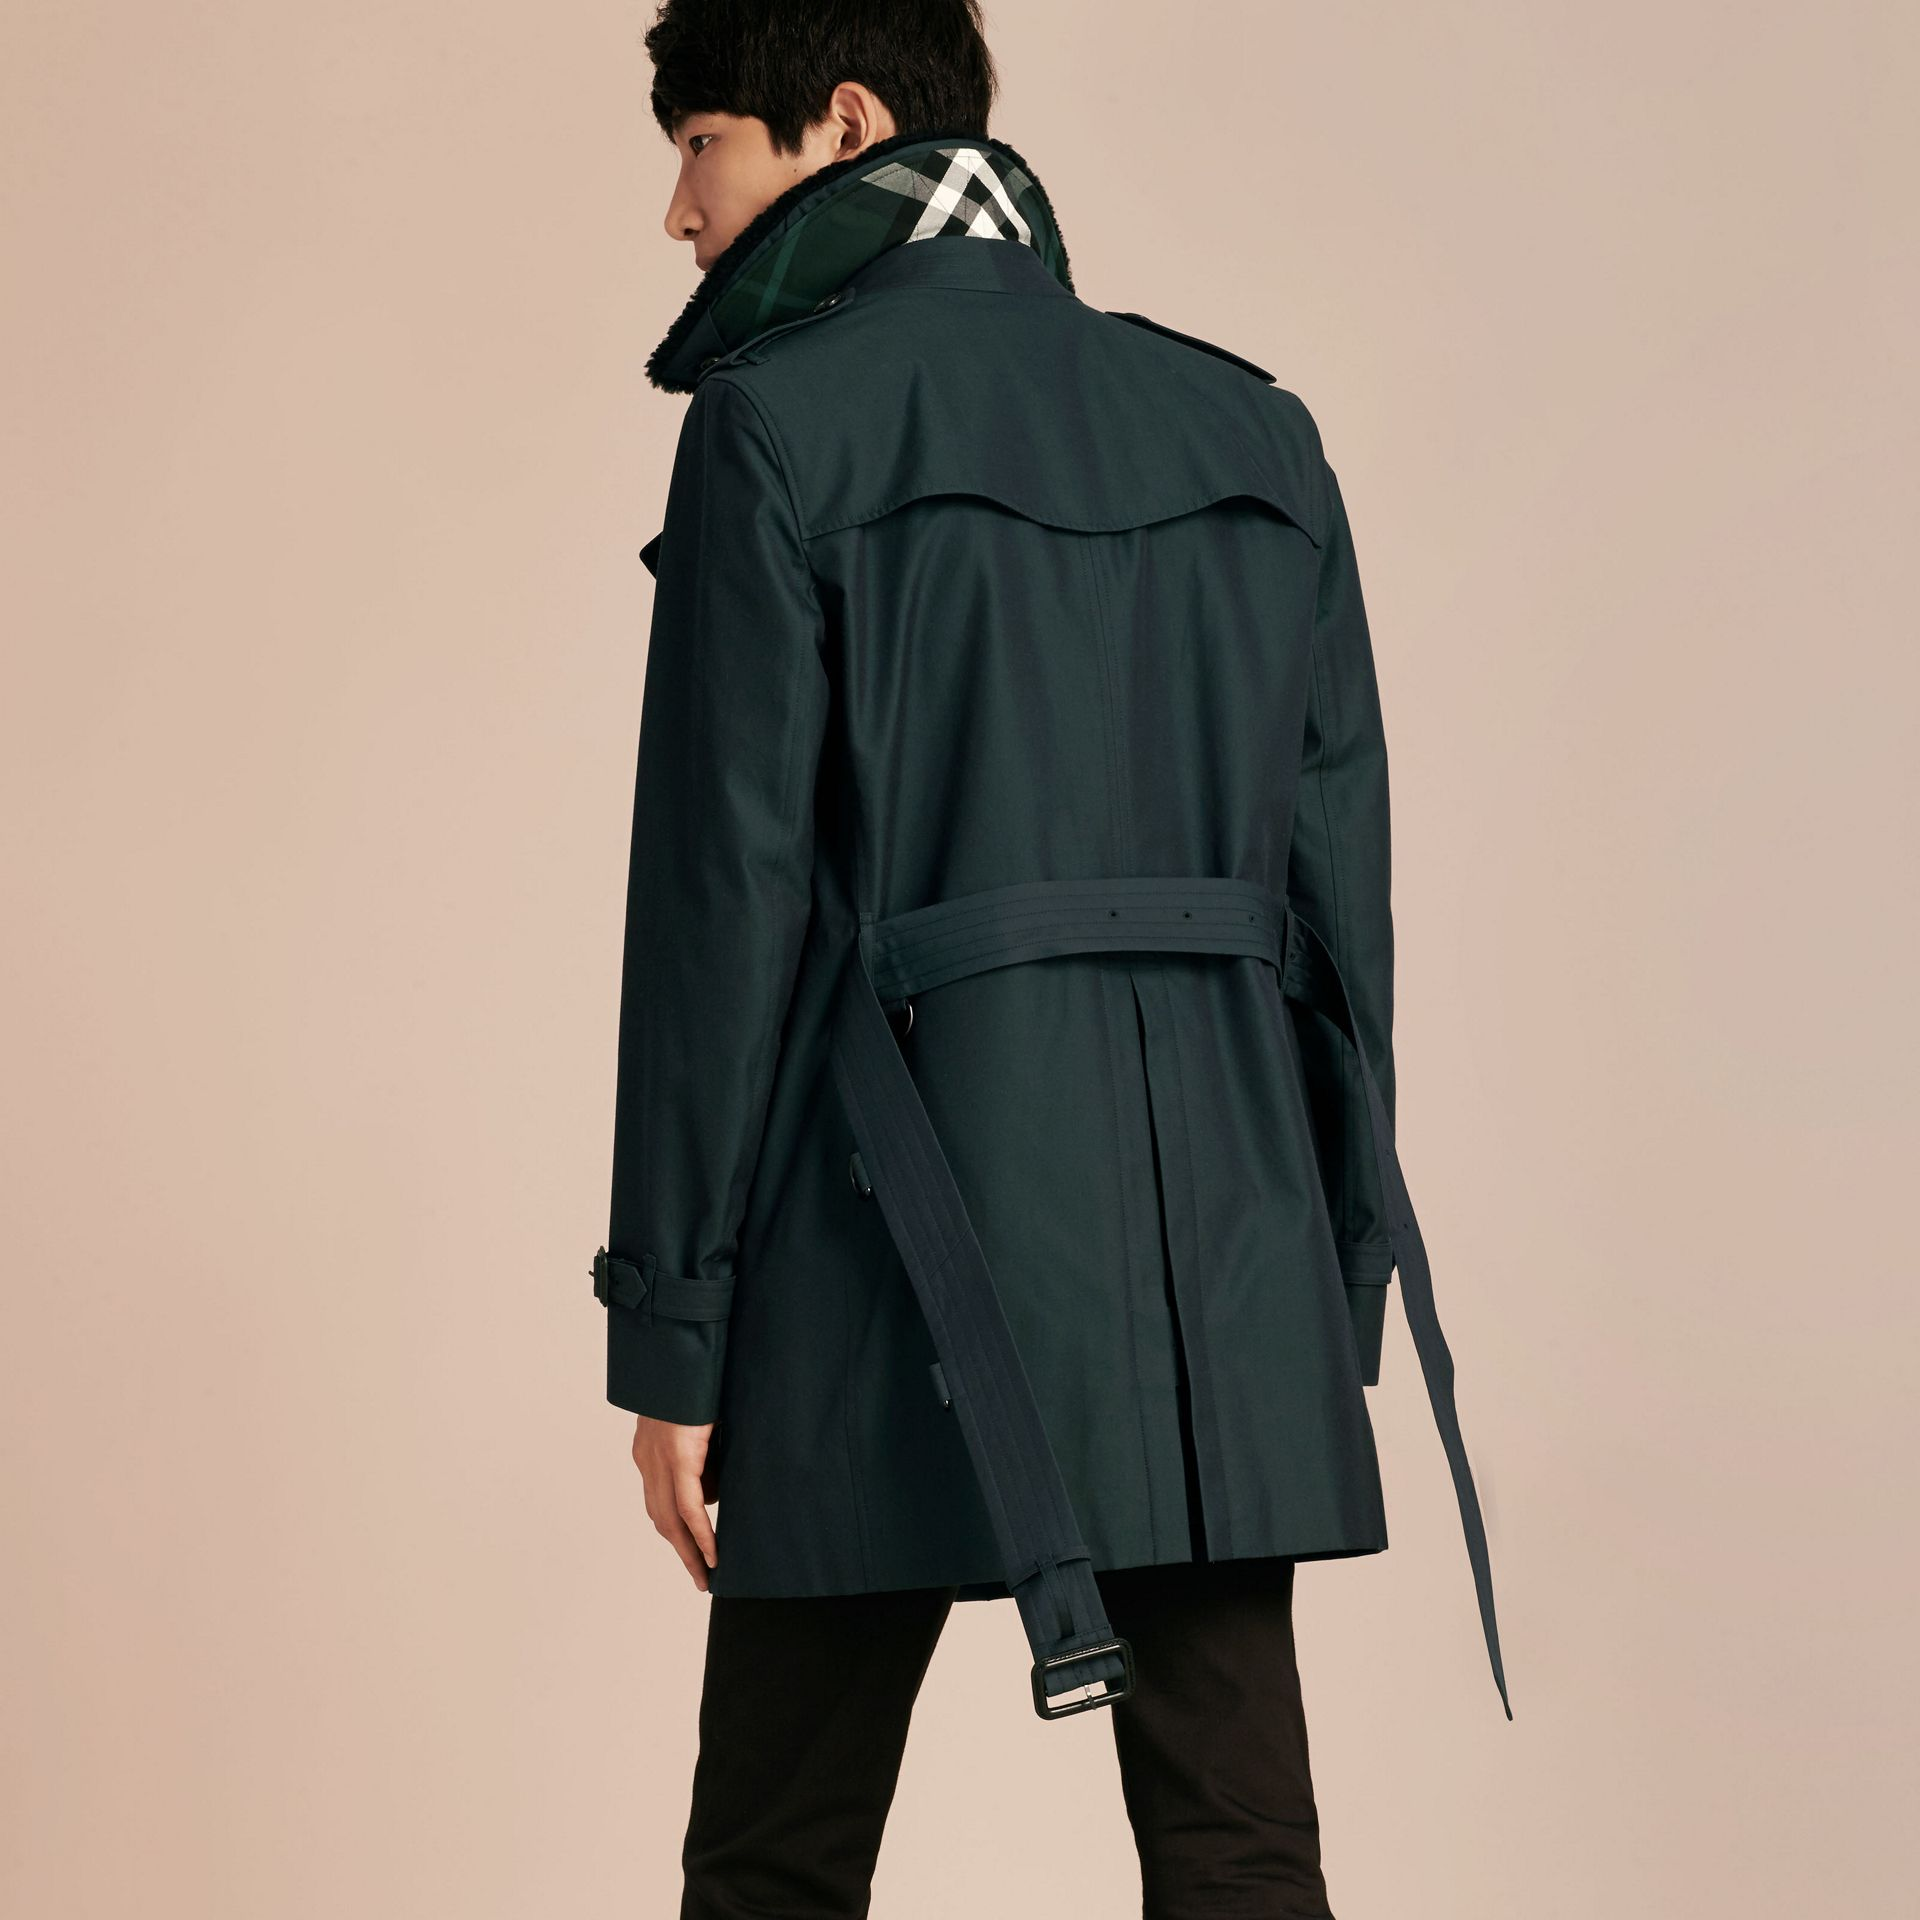 Racing green Detachable Shearling Topcollar Cotton Gabardine Trench Coat with Warmer Racing Green - gallery image 3